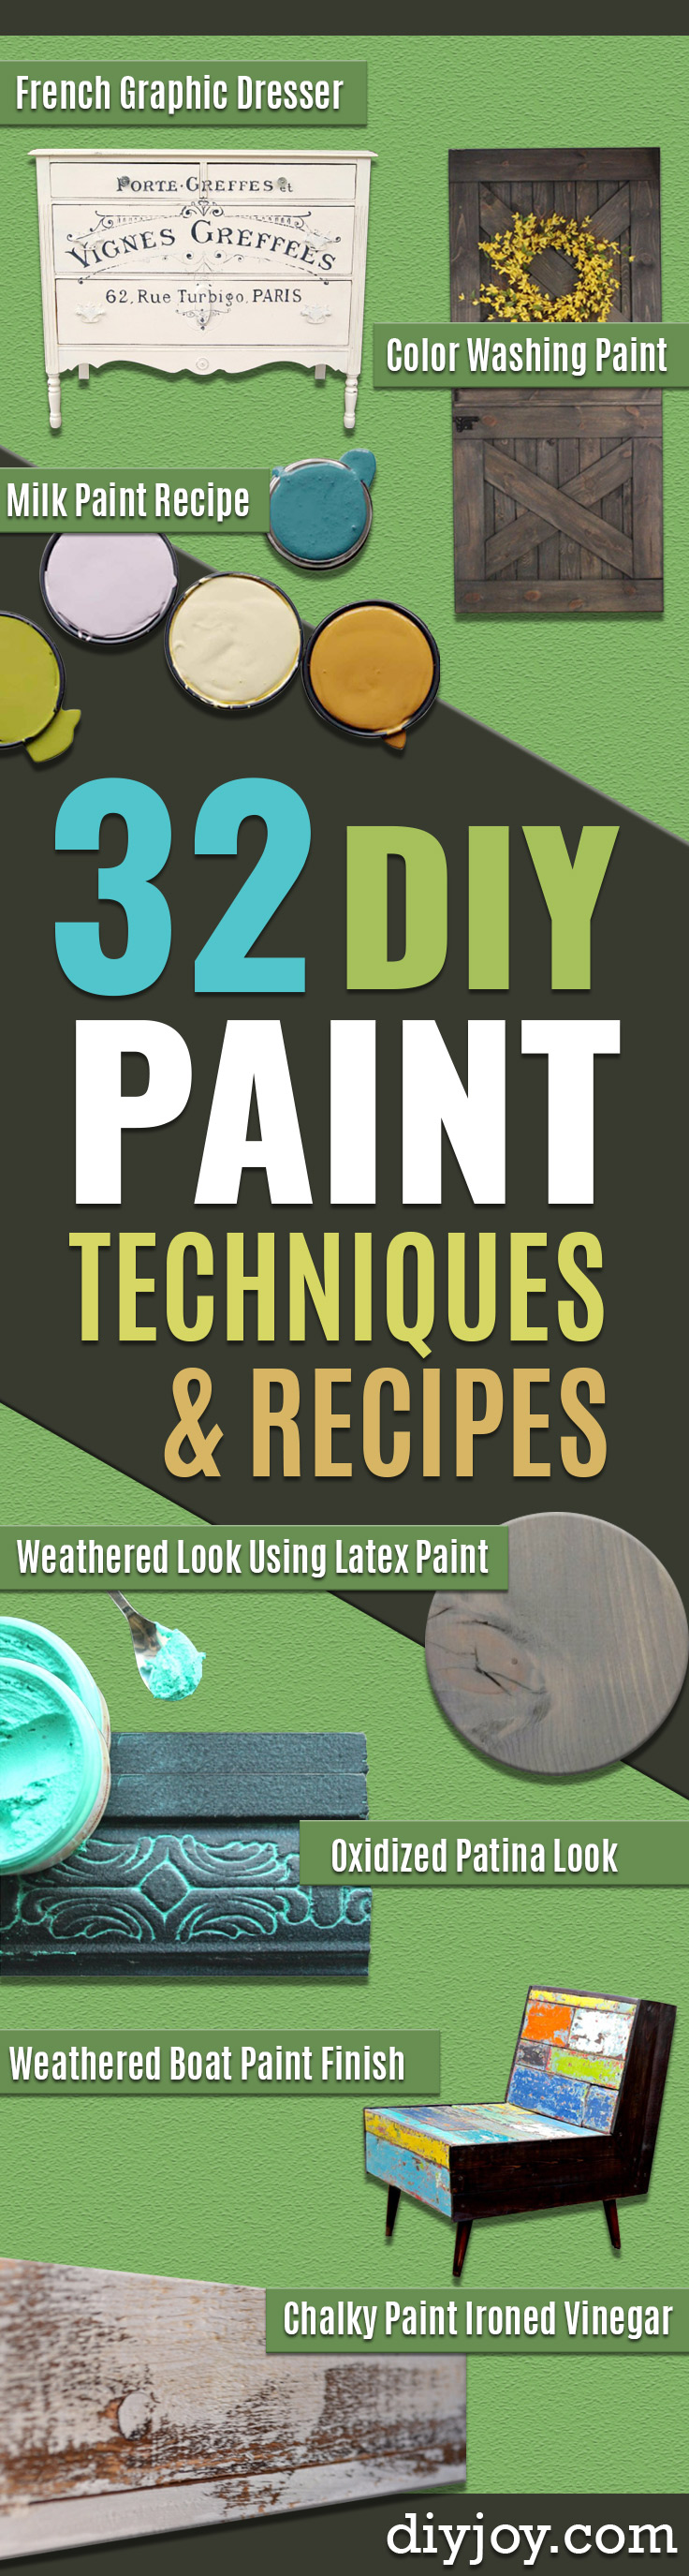 32 DIY Paint Techniques and Recipes - Cool Painting Ideas for Walls and Furniture - Awesome Tutorials for Stencil Projects and Easy Step By Step Tutorials for Painting Beautiful Backgrounds and Patterns. Modern, Vintage, Distressed and Classic Looks for Home, Living Room, Bedroom and More http://diyjoy.com/diy-paint-techniques